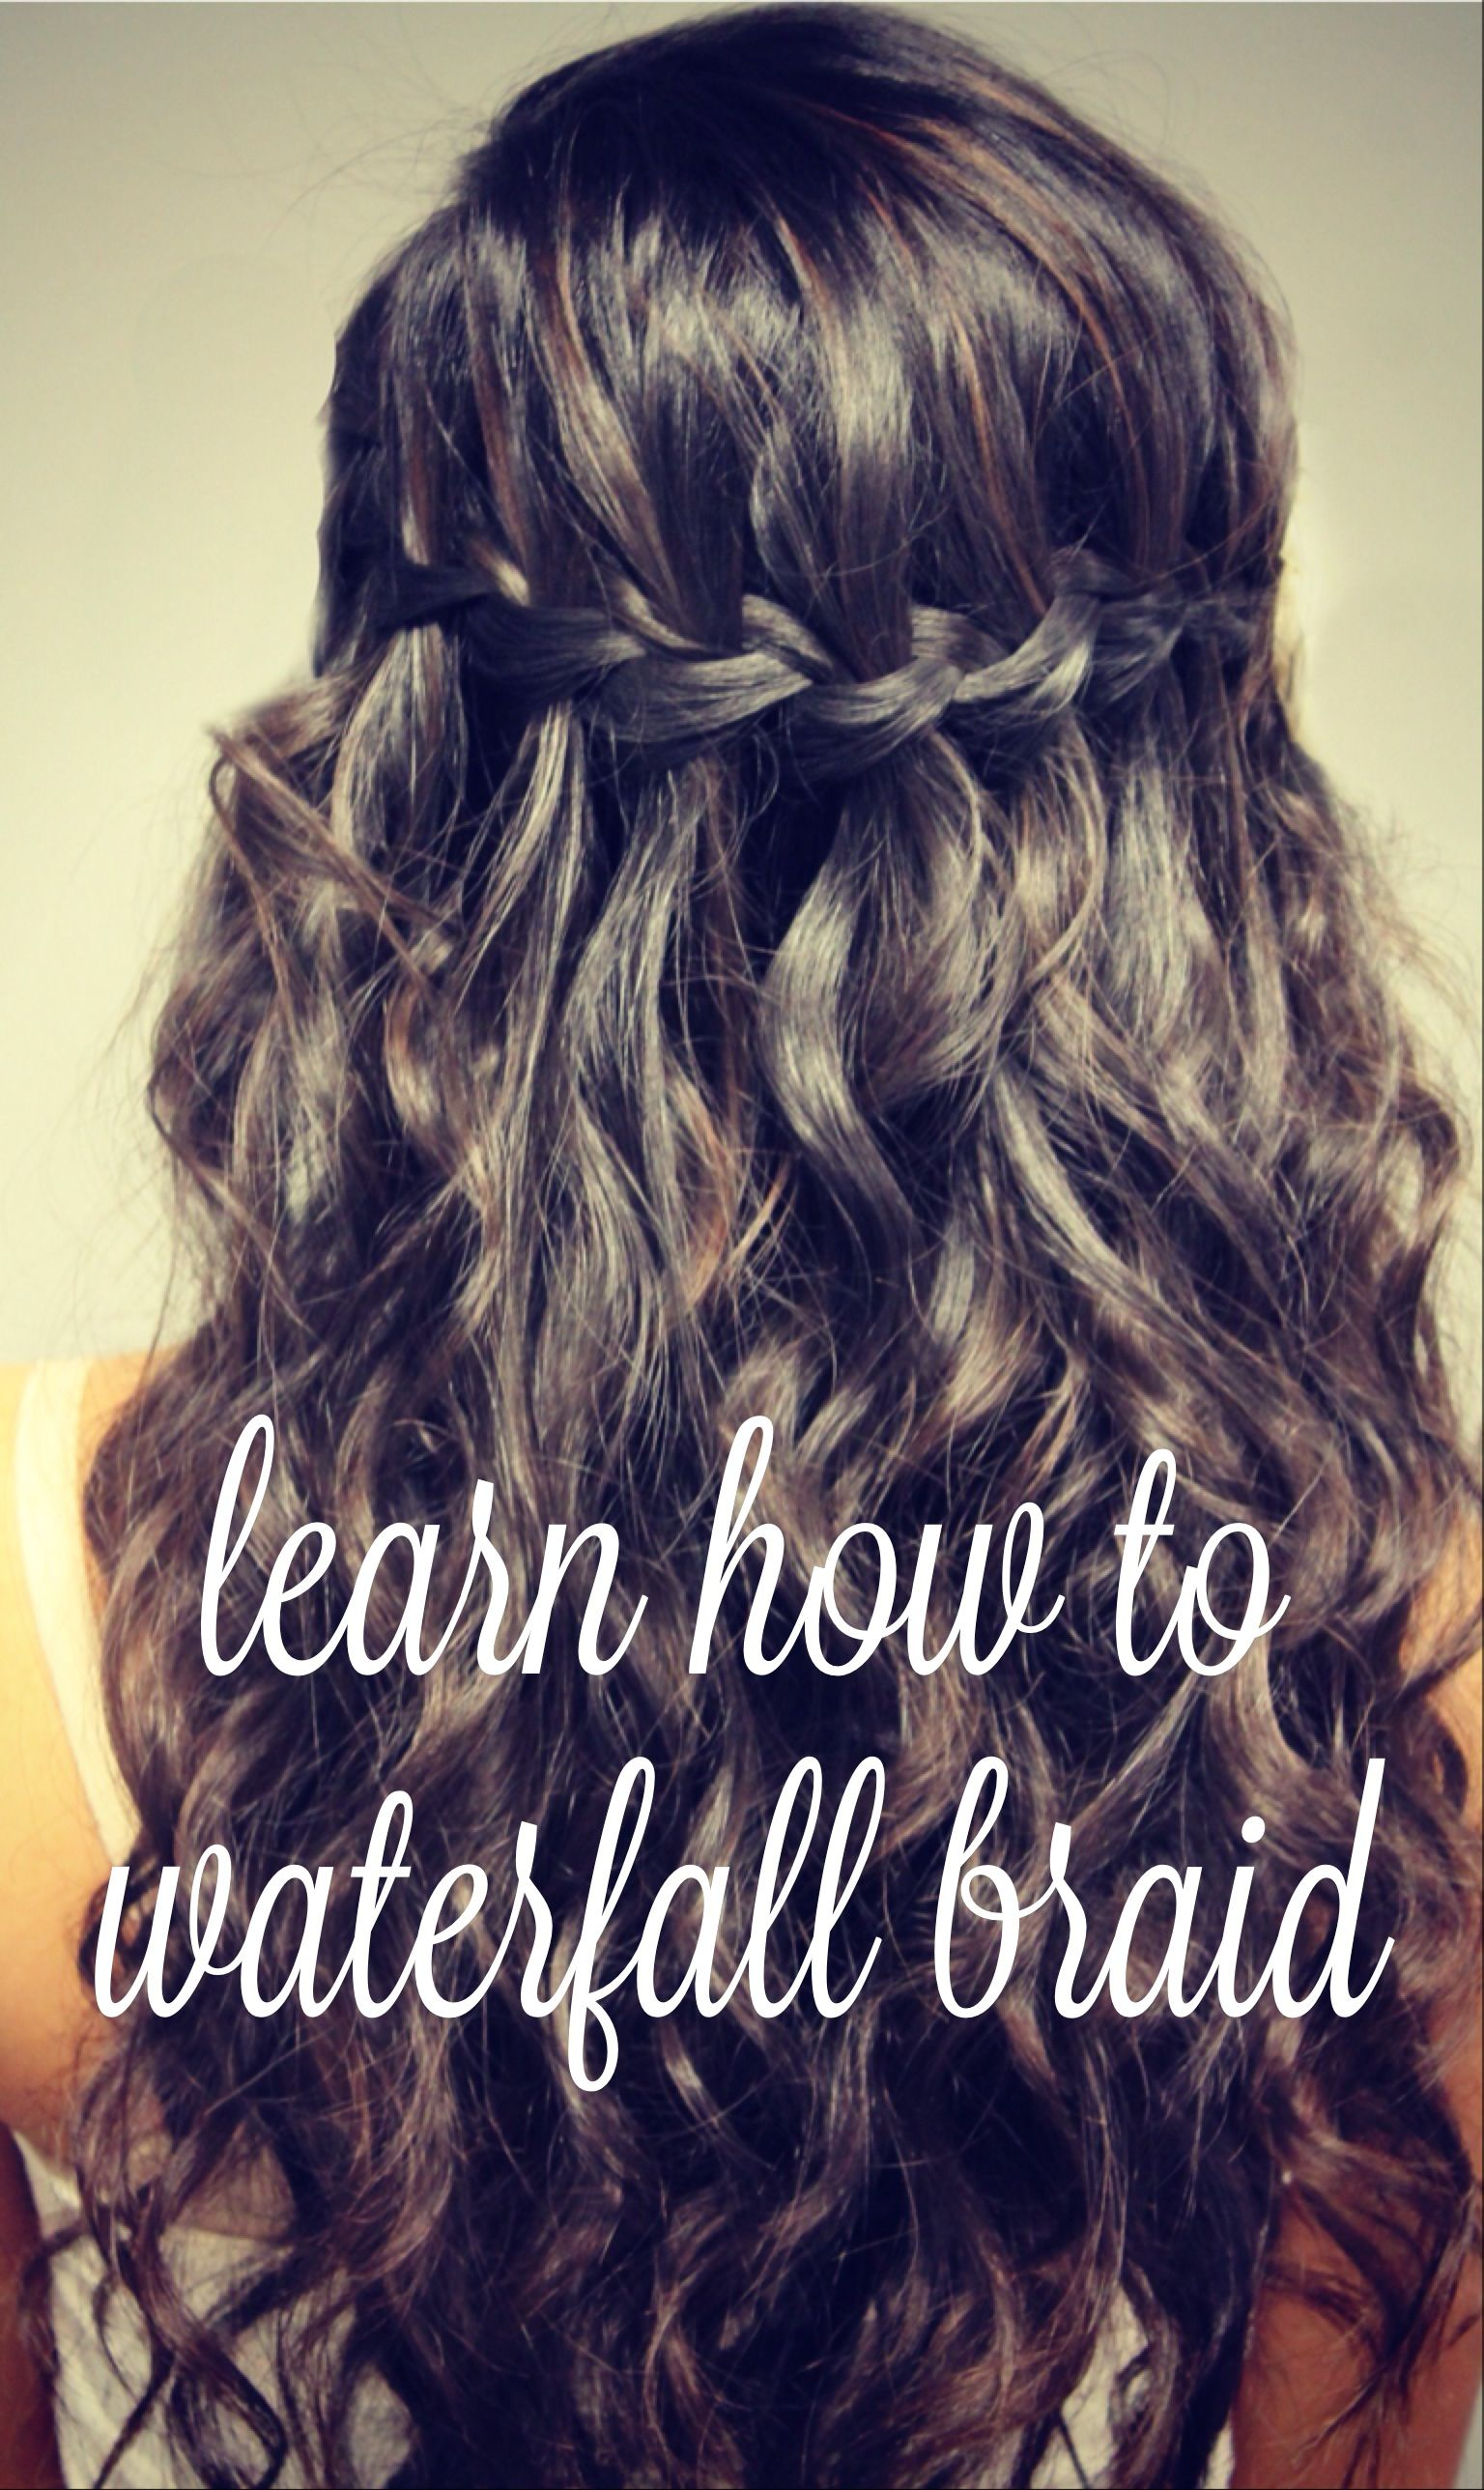 Learn how to waterfall braid hairstyles pinterest